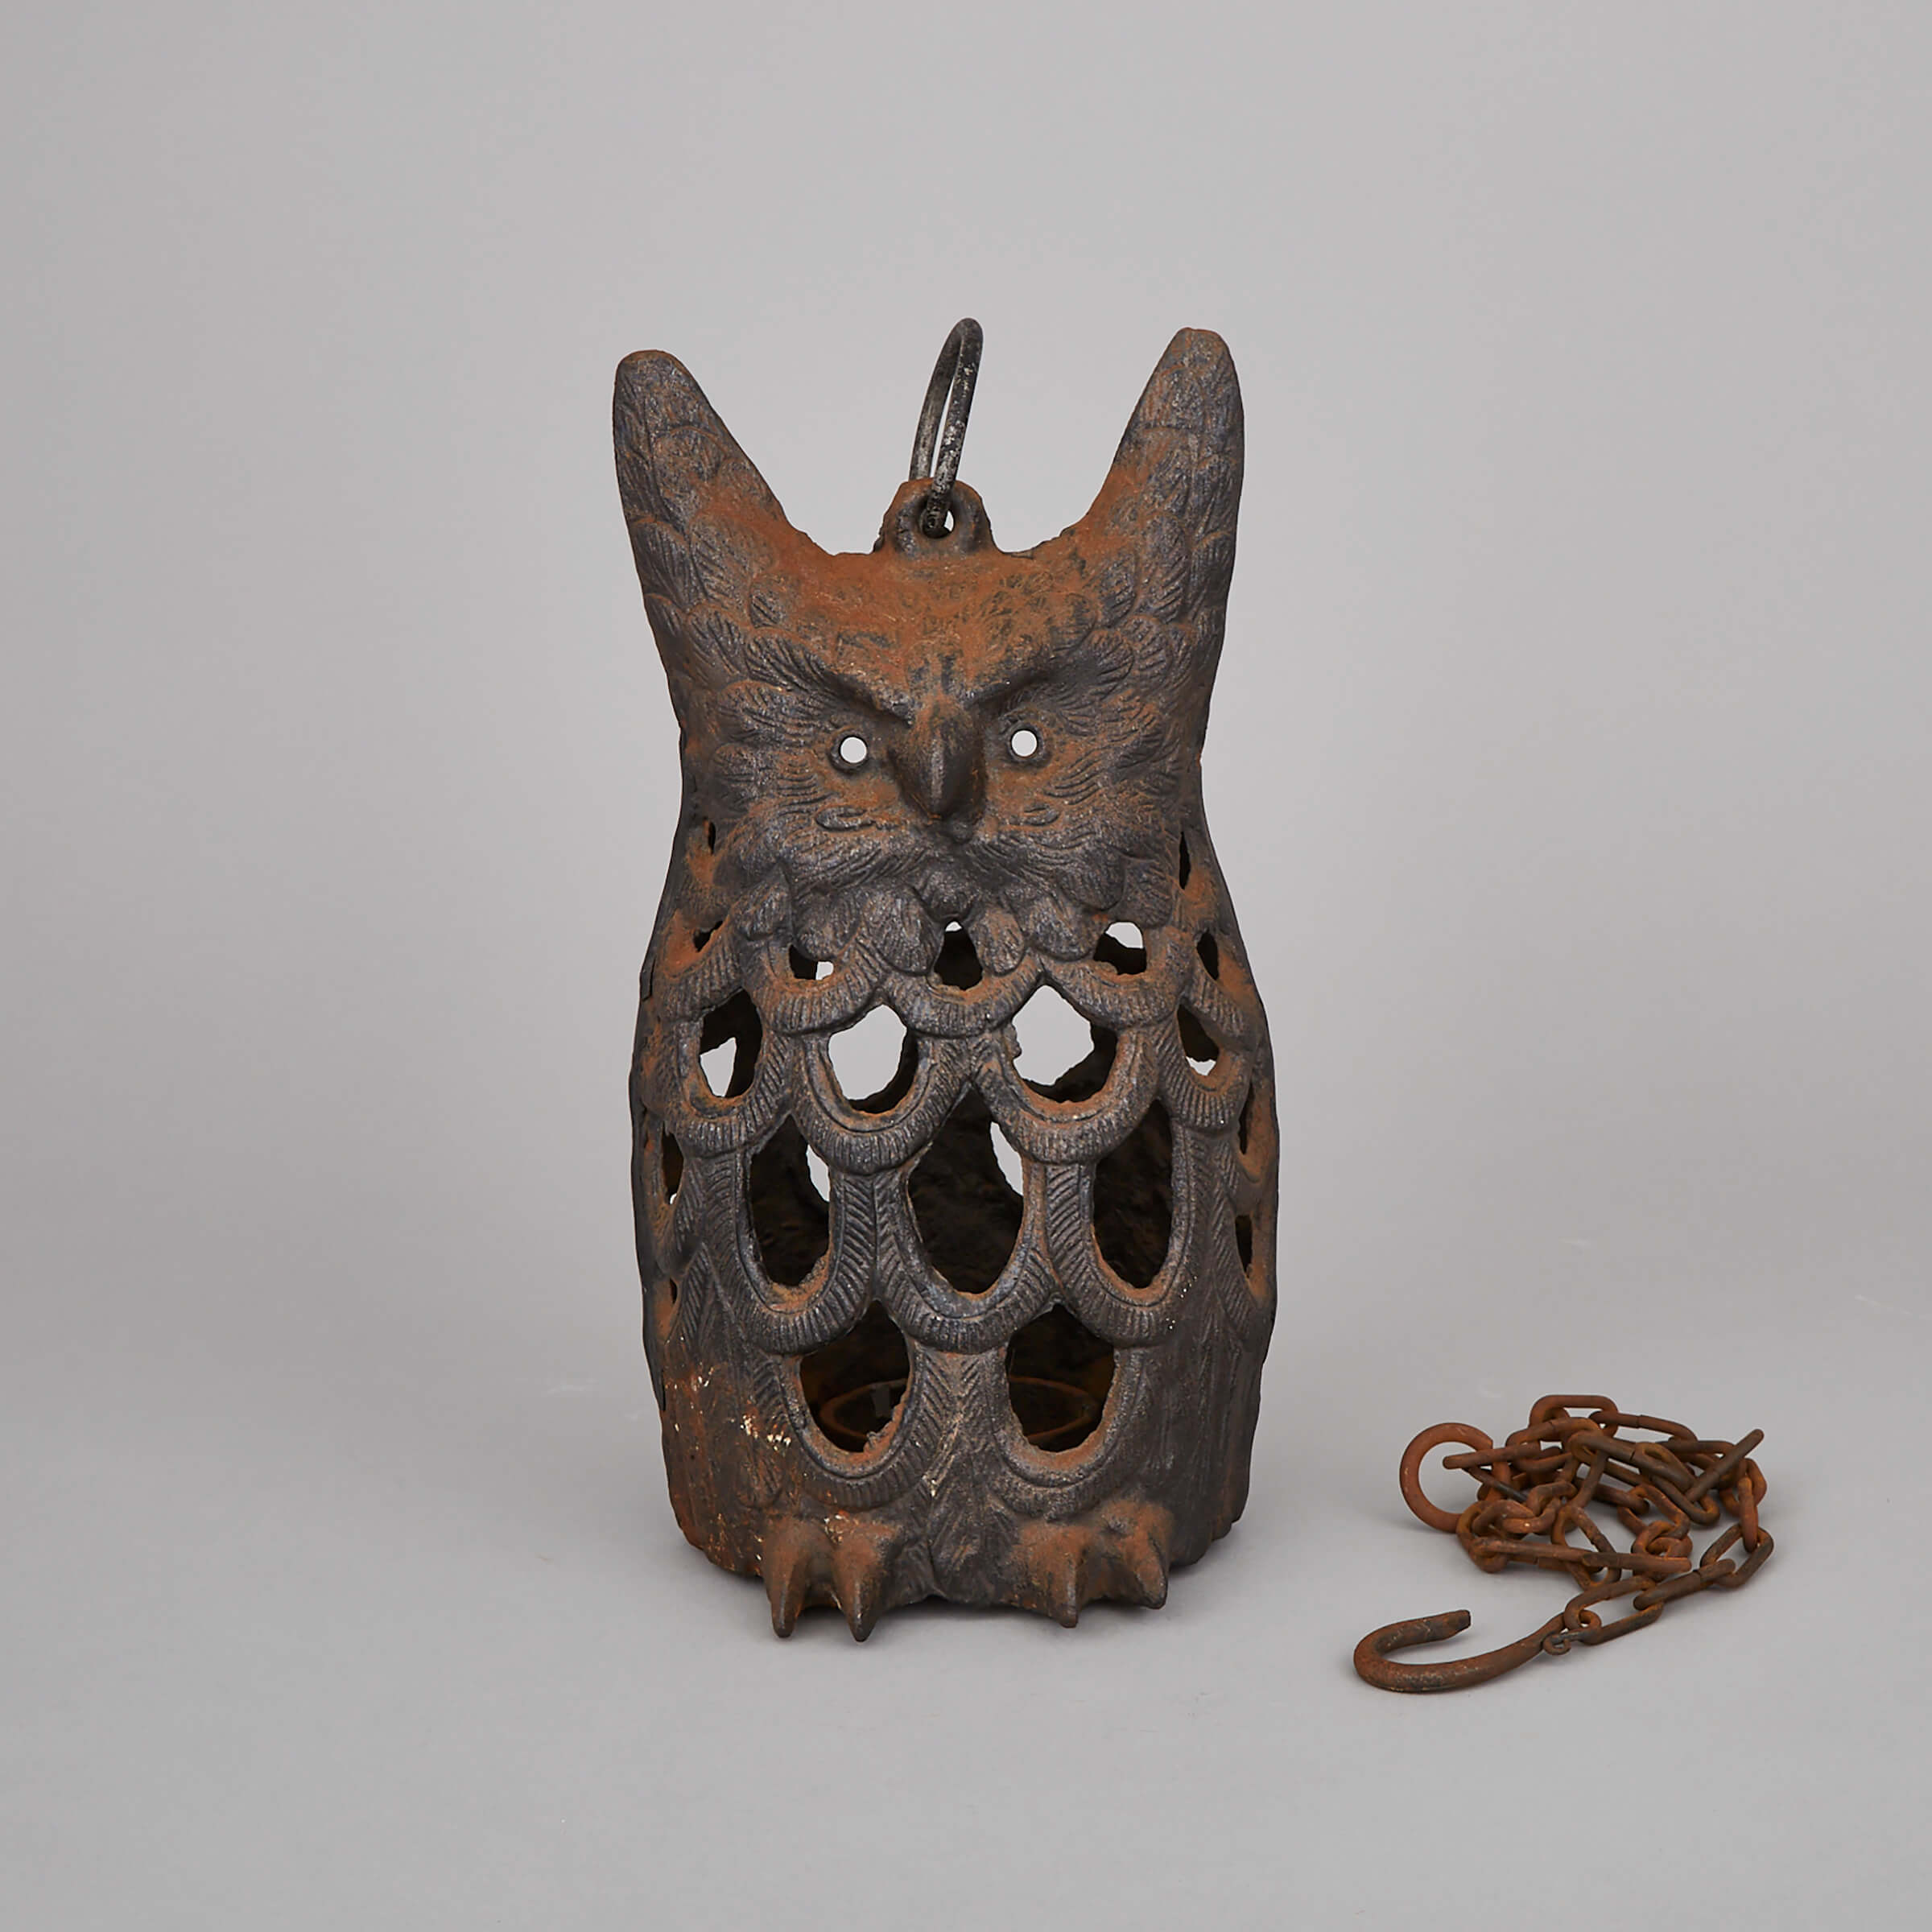 A Japanese Cast Iron Owl Lantern